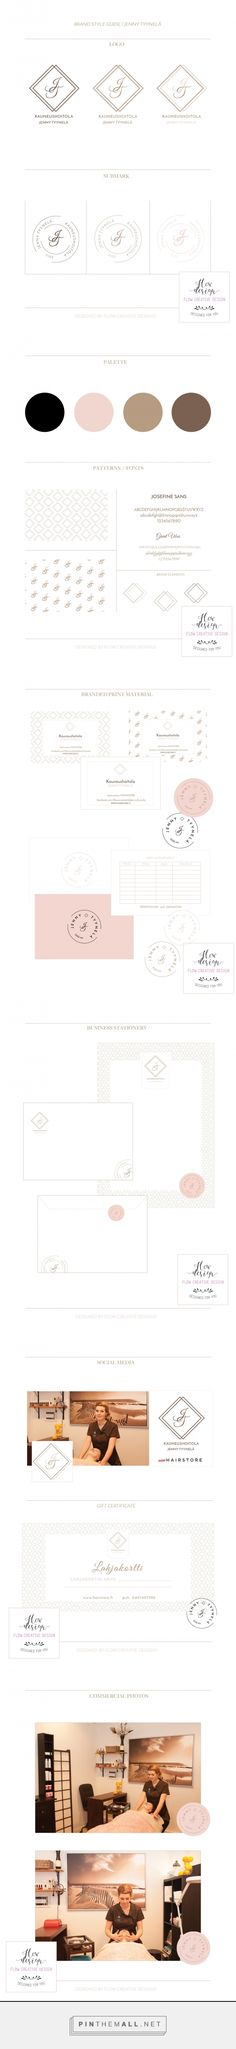 Brand Style Guide for Jenny Tyynelä Flow Creative Designs... - a grouped images picture - Pin Them All